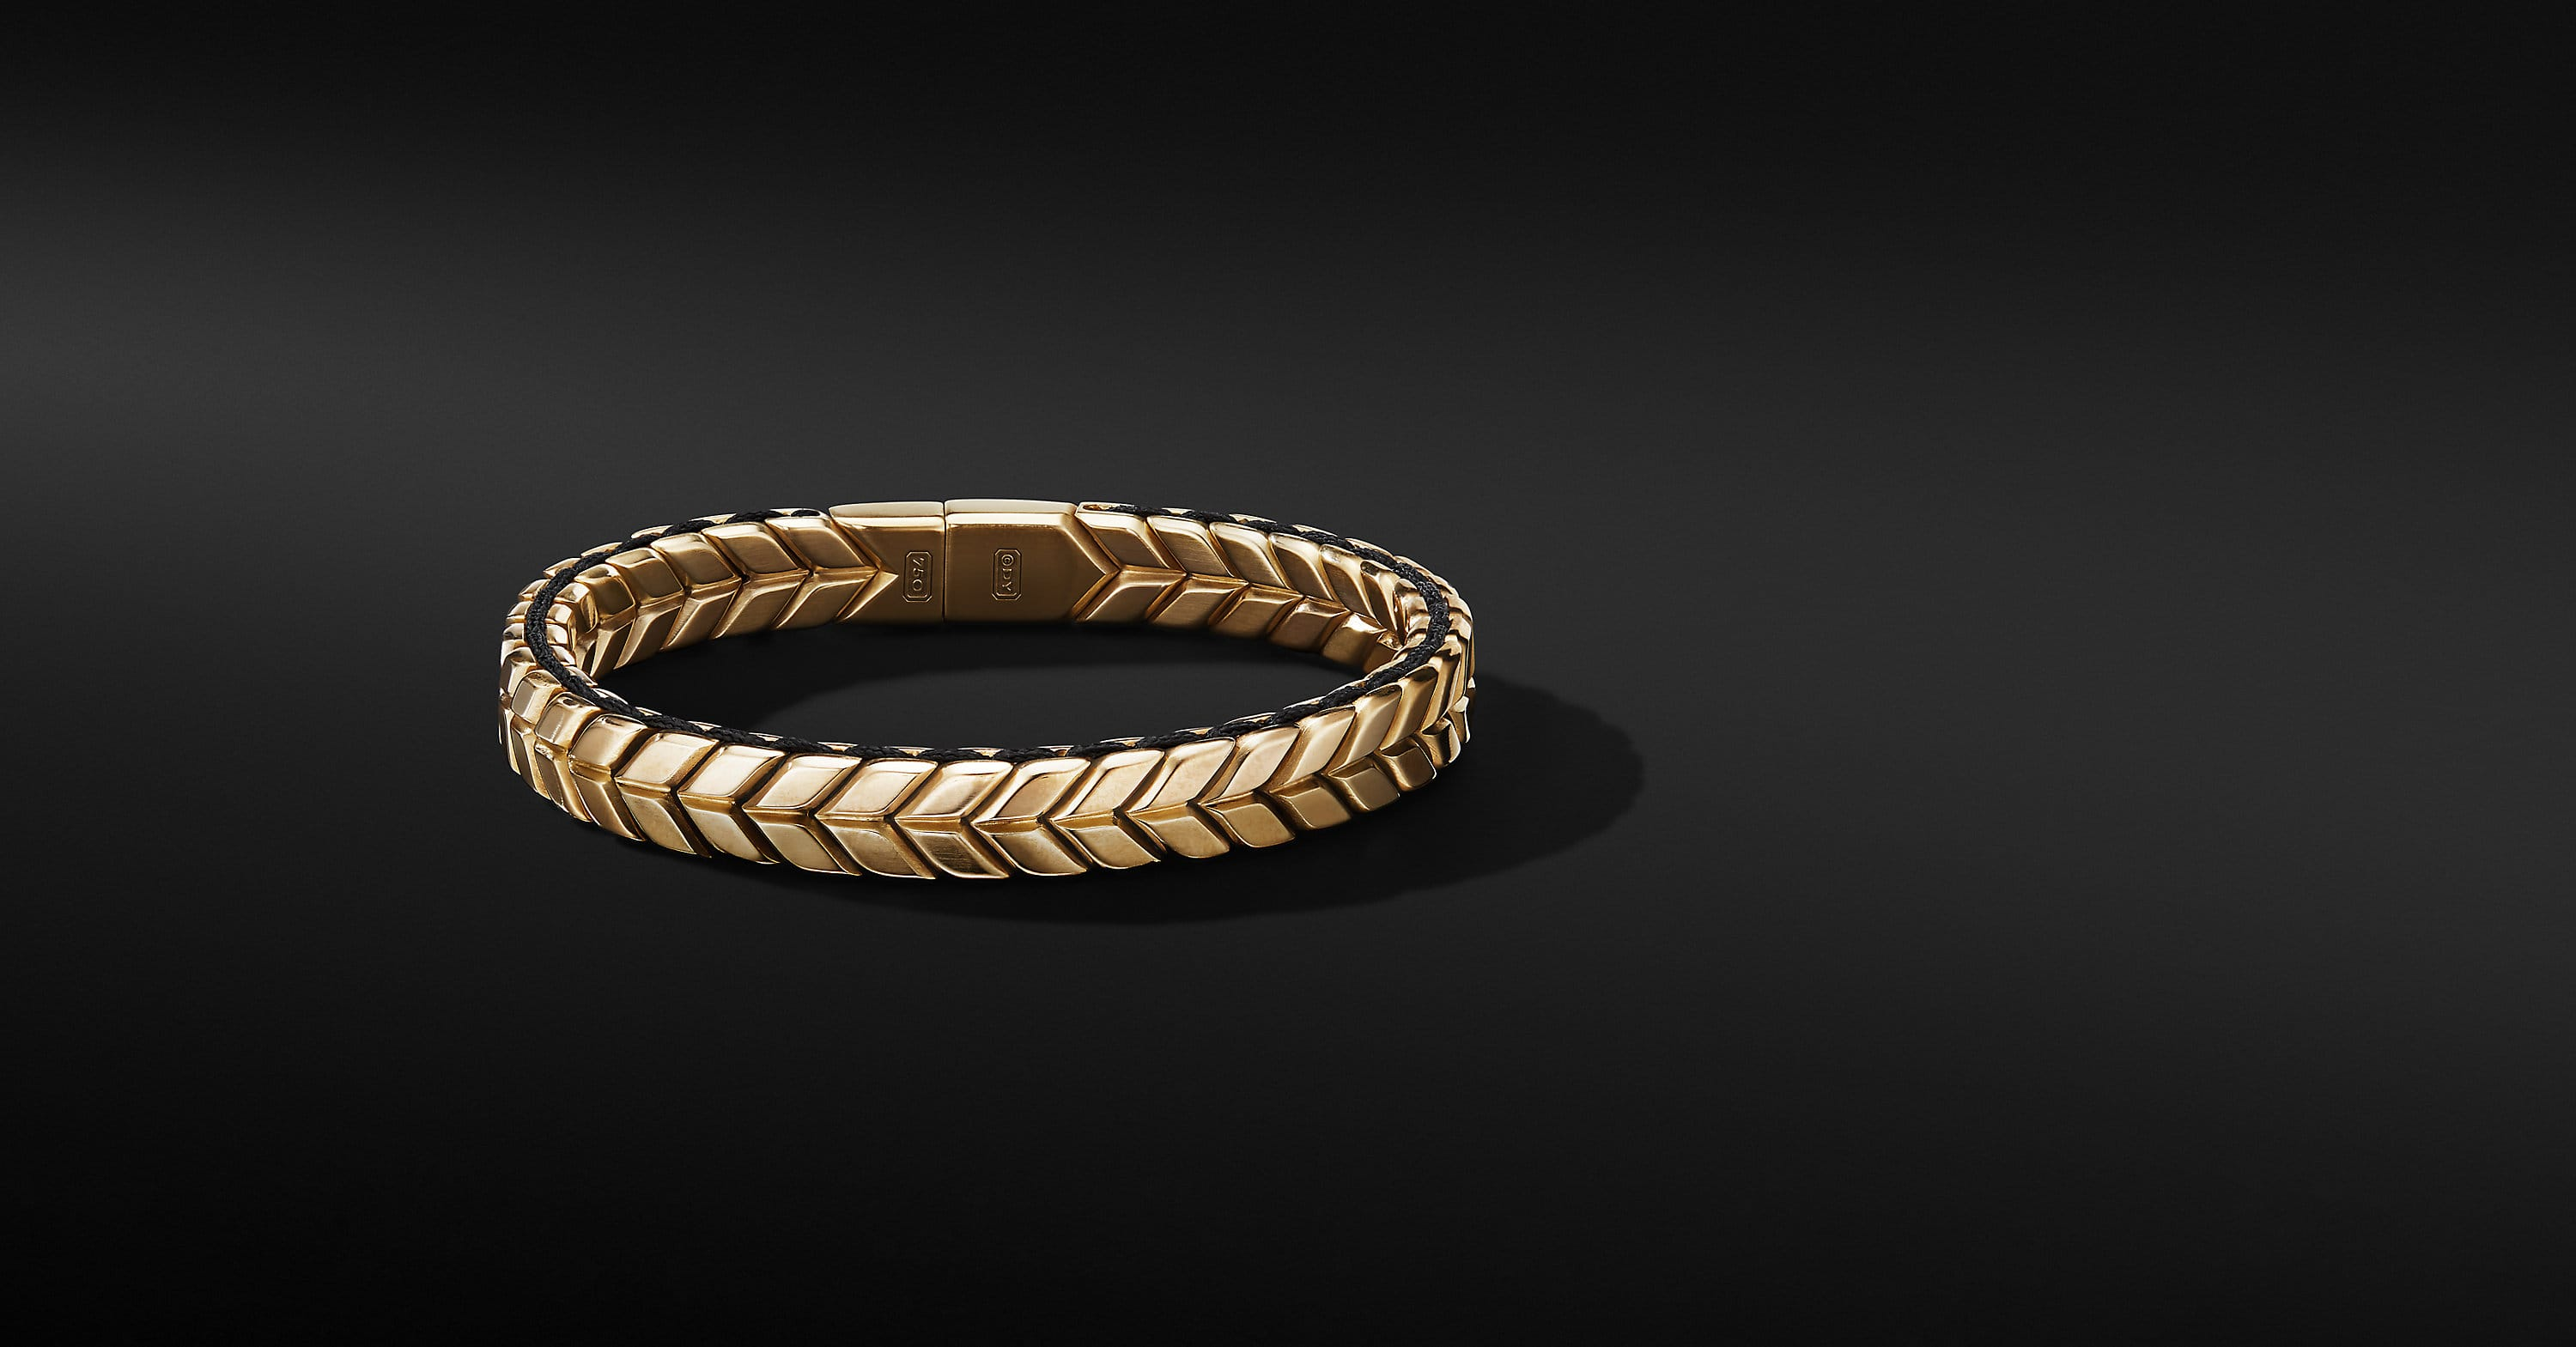 Chevron Woven Bracelet in 18K Yellow Gold, 9mm